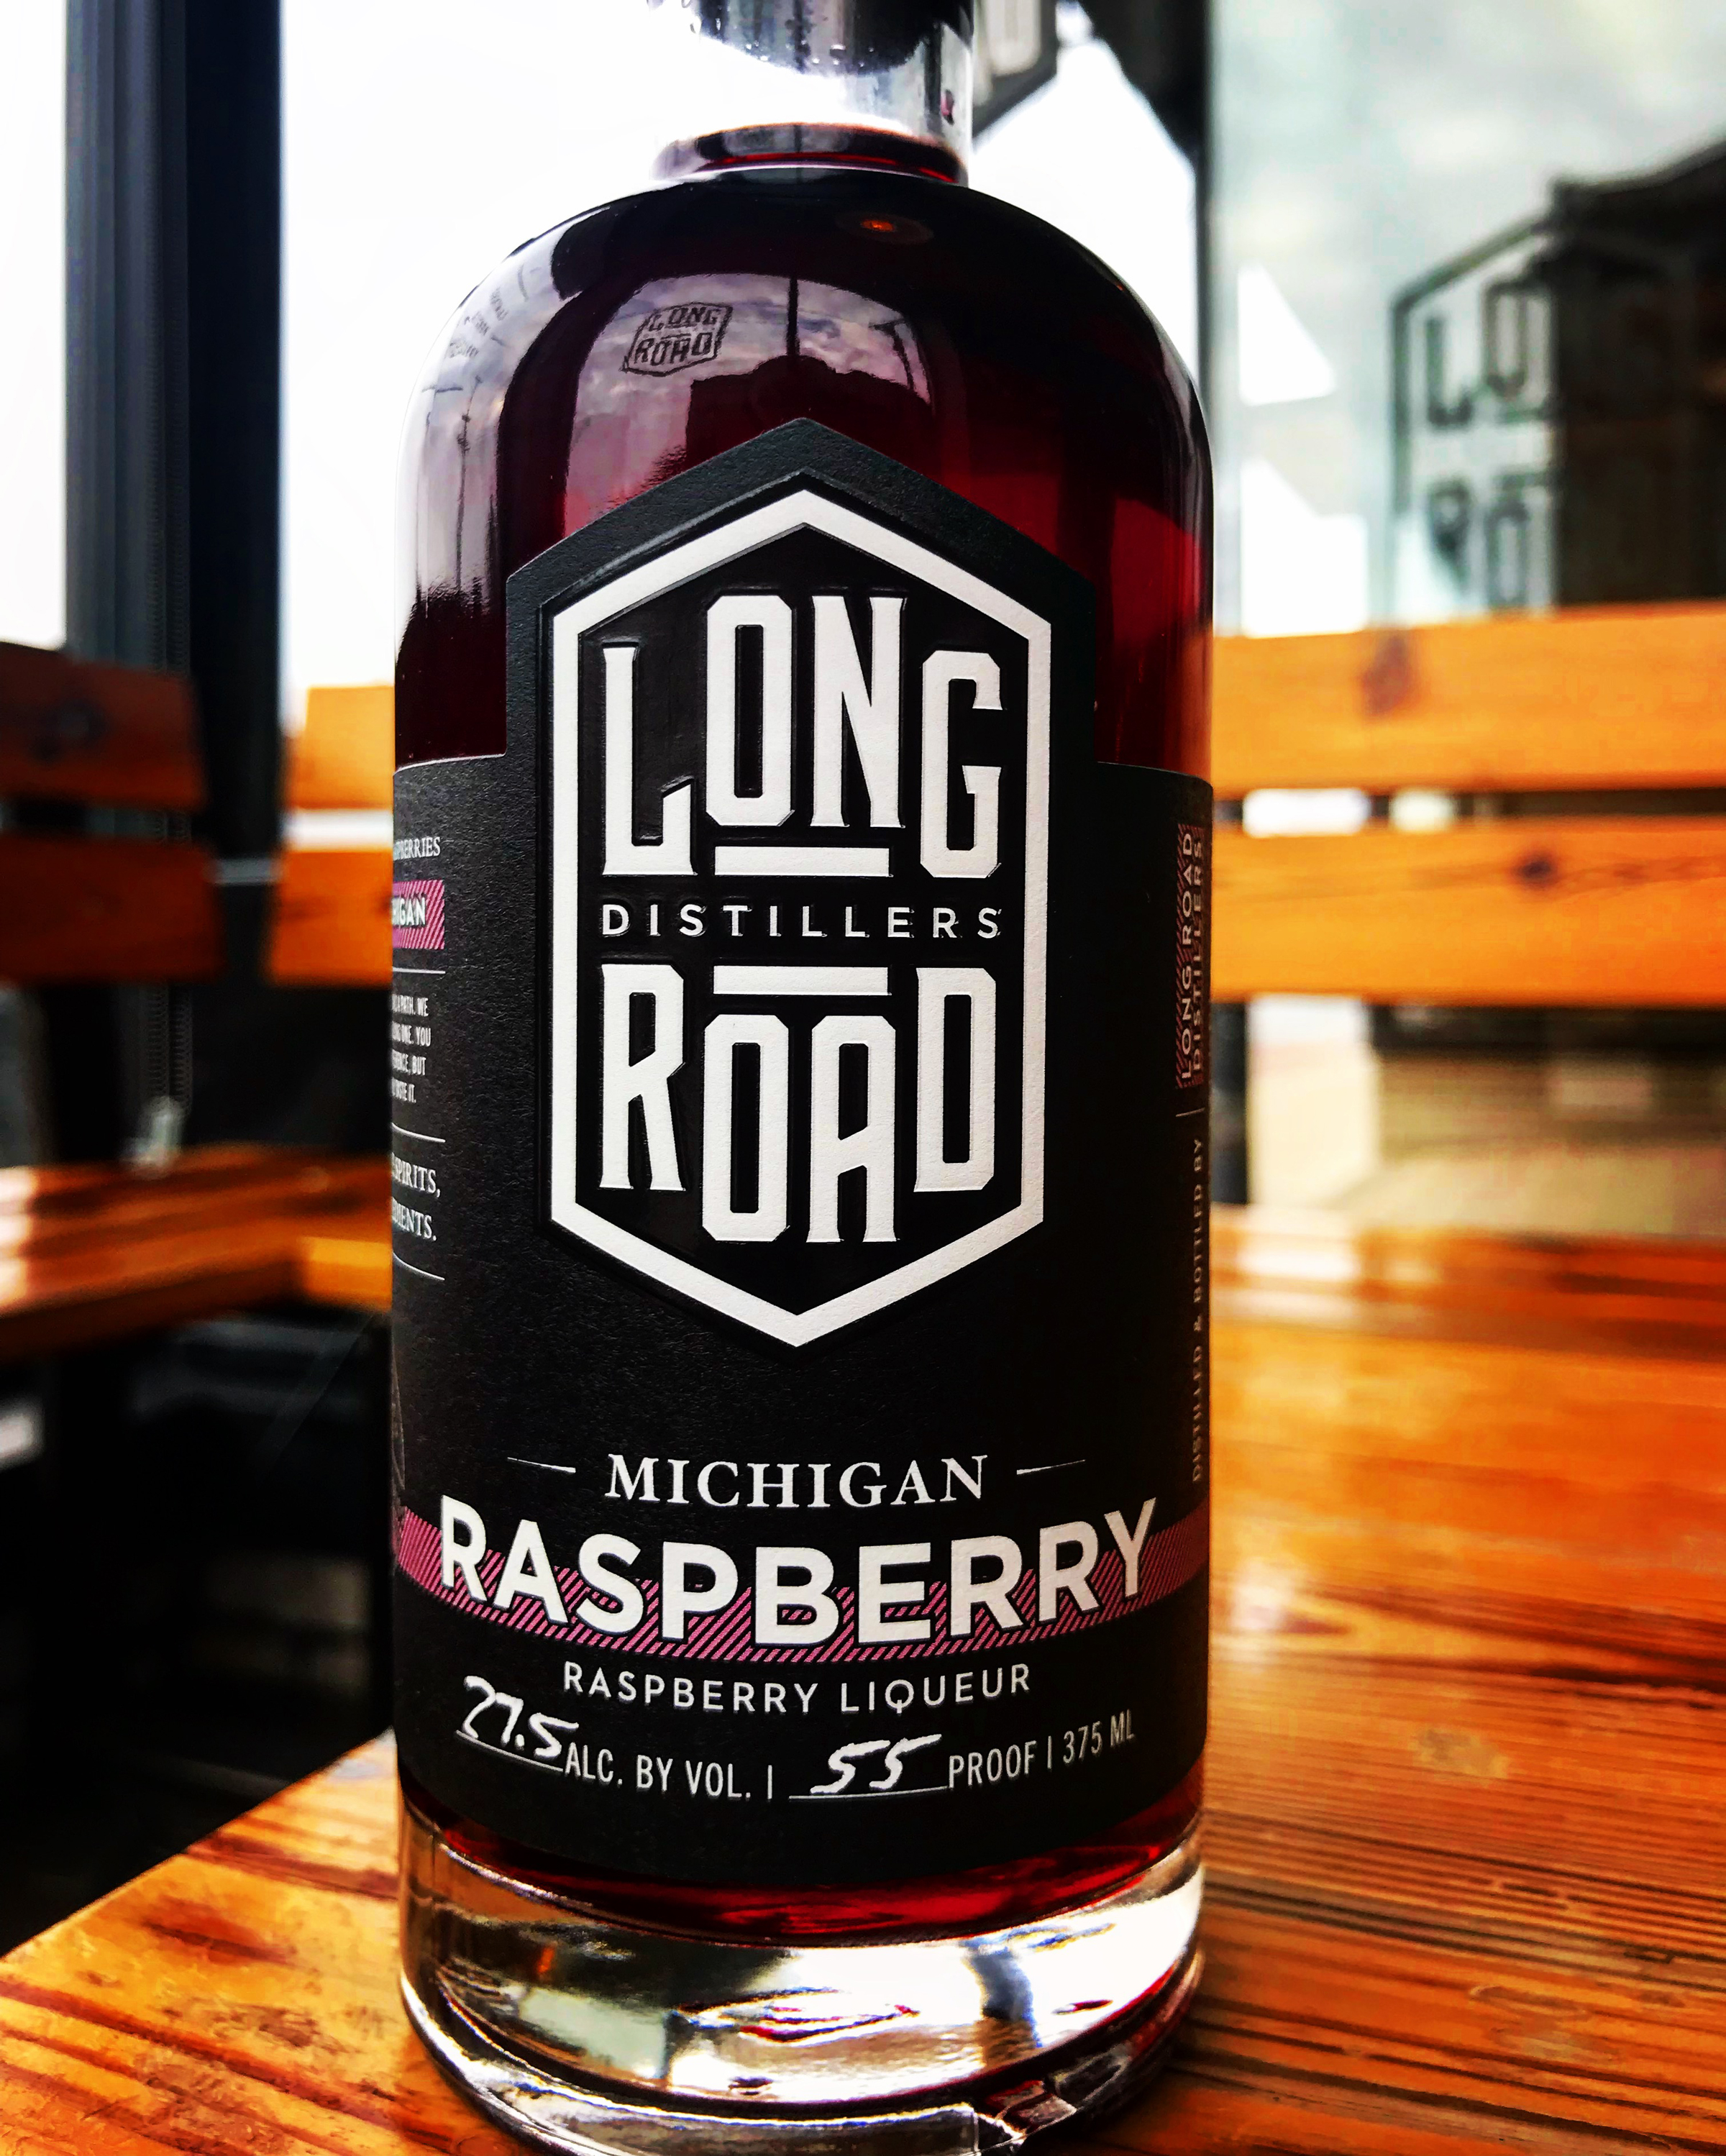 Long Road Distillers Raspberry Liqueur